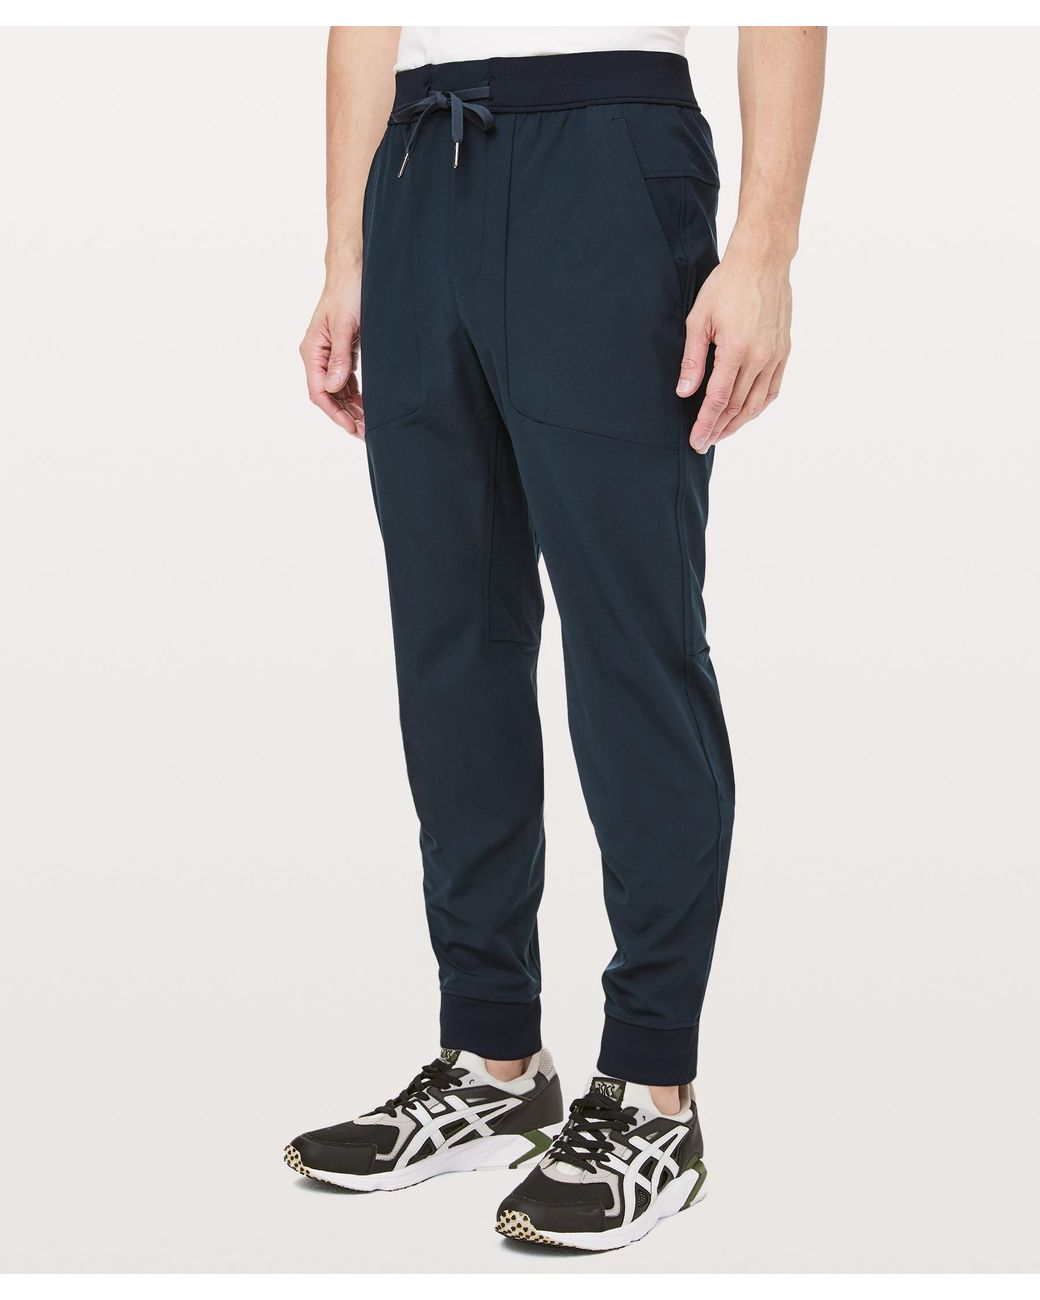 1181bf1a8 lululemon athletica Abc Jogger  shorter 28